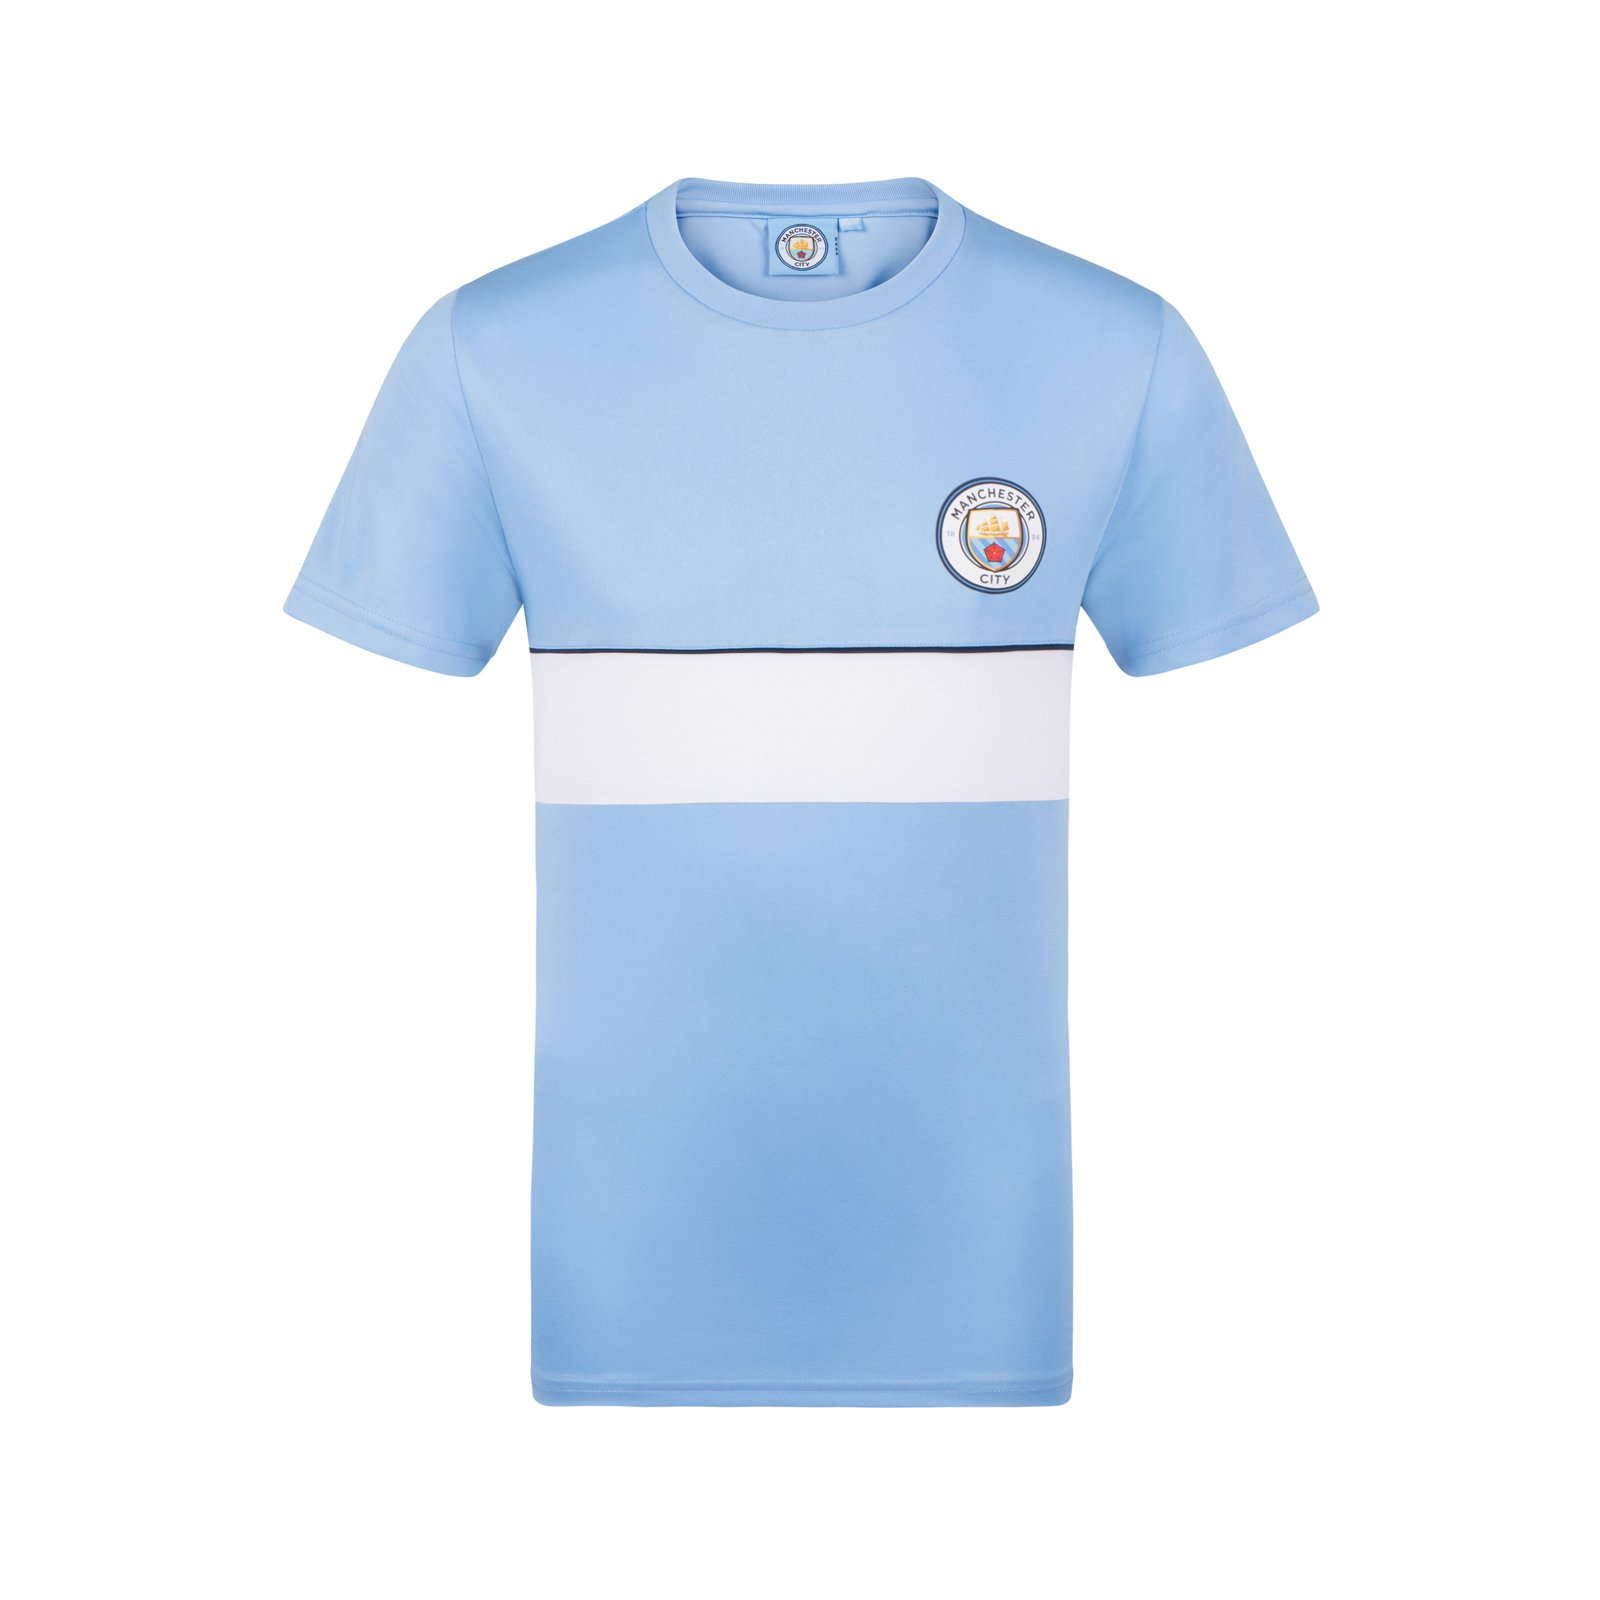 Manchester City Fc Official Football Gift Boys Poly Training Kit T Shirt Buy Online In Dominica At Dominica Desertcart Com Productid 118947544